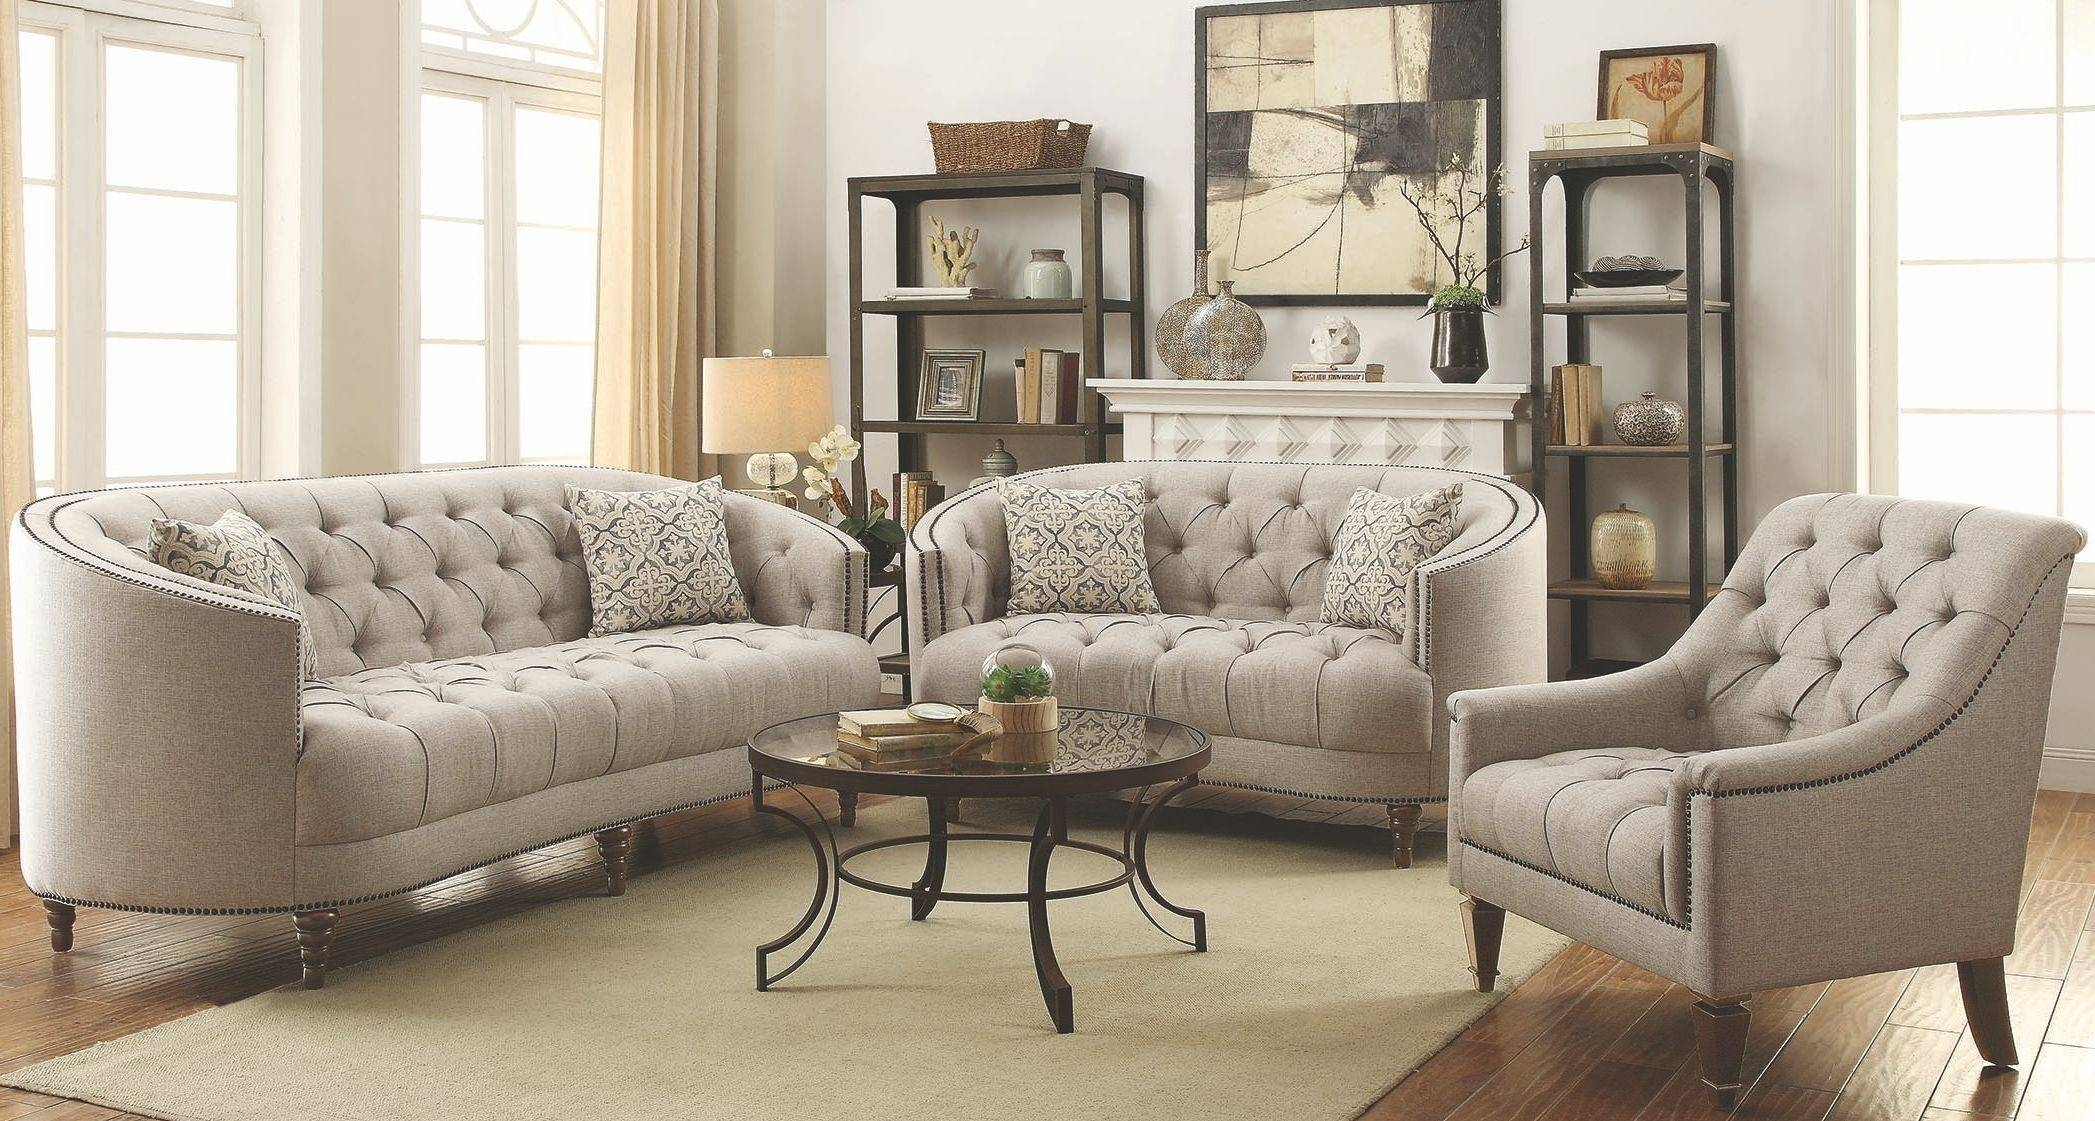 Avonlea Stone Grey Sofa for Broyhill Perspectives Sofas (Image 2 of 15)